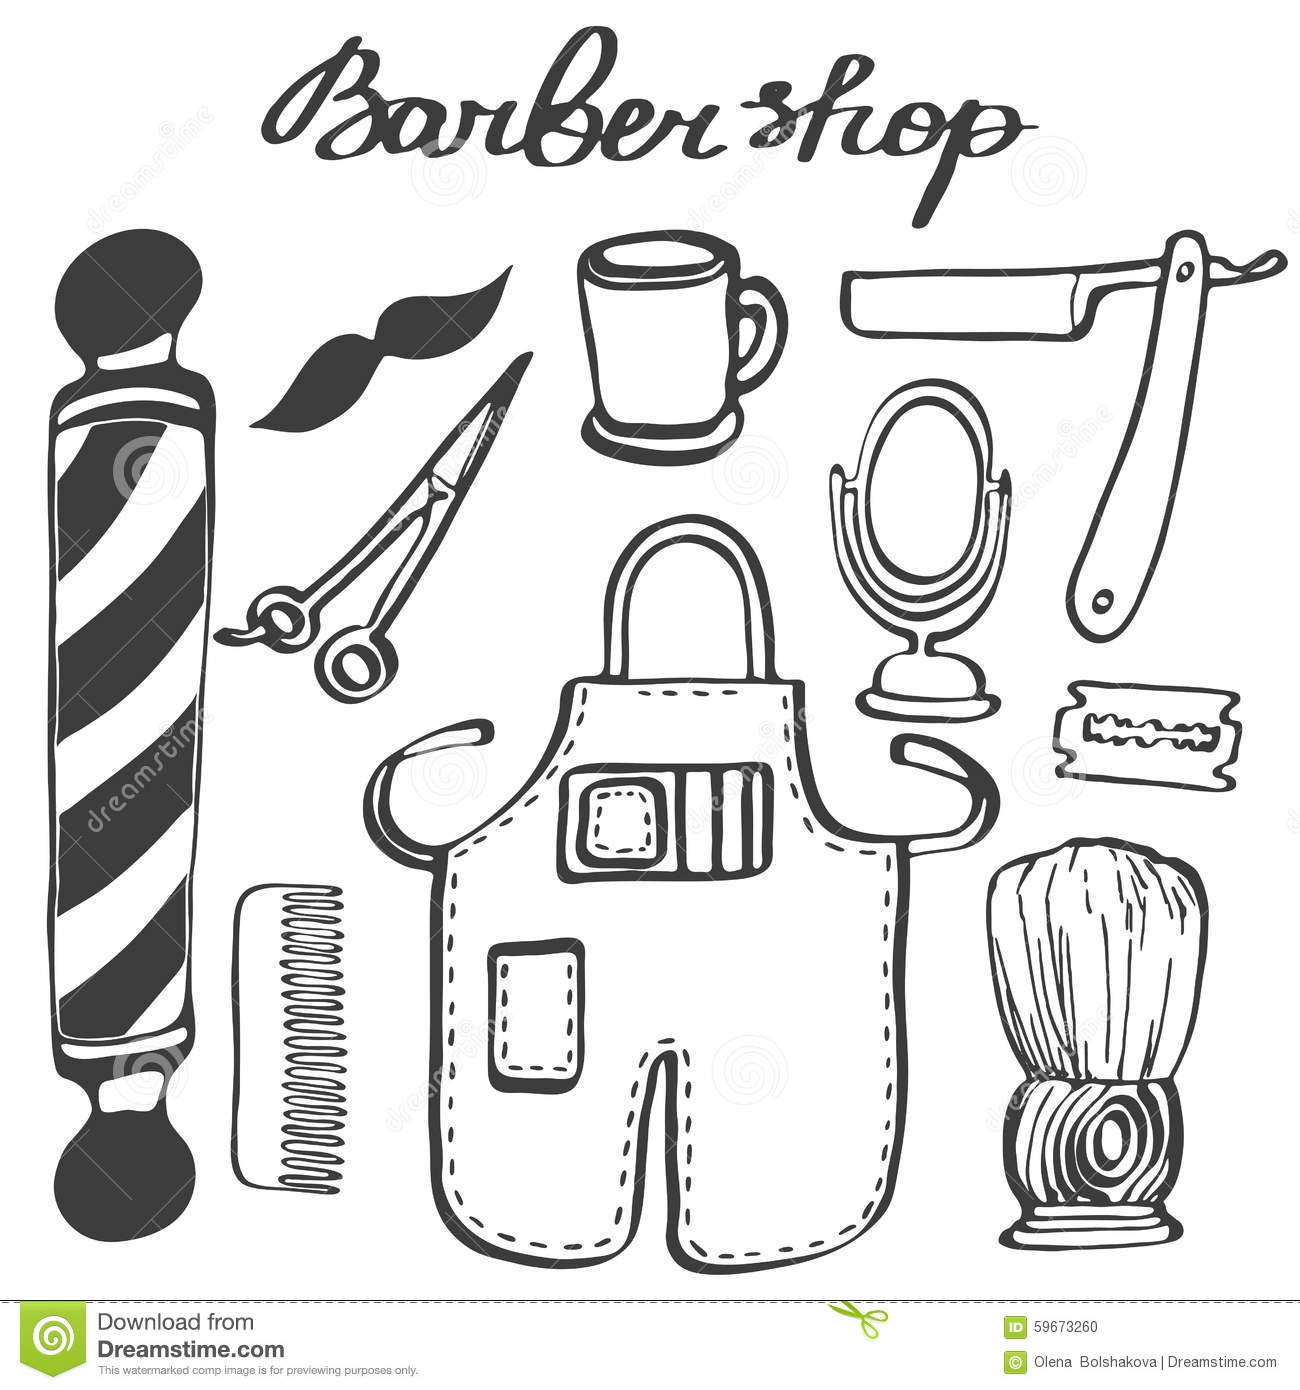 Search additionally 179944 also Stock Illustration Barbershop Set Hand Drawn Cartoon Hairdressing Stuff Doodle Drawing Vector Illustration Image59673260 furthermore Pente De Cabelo besides 78. on 3580